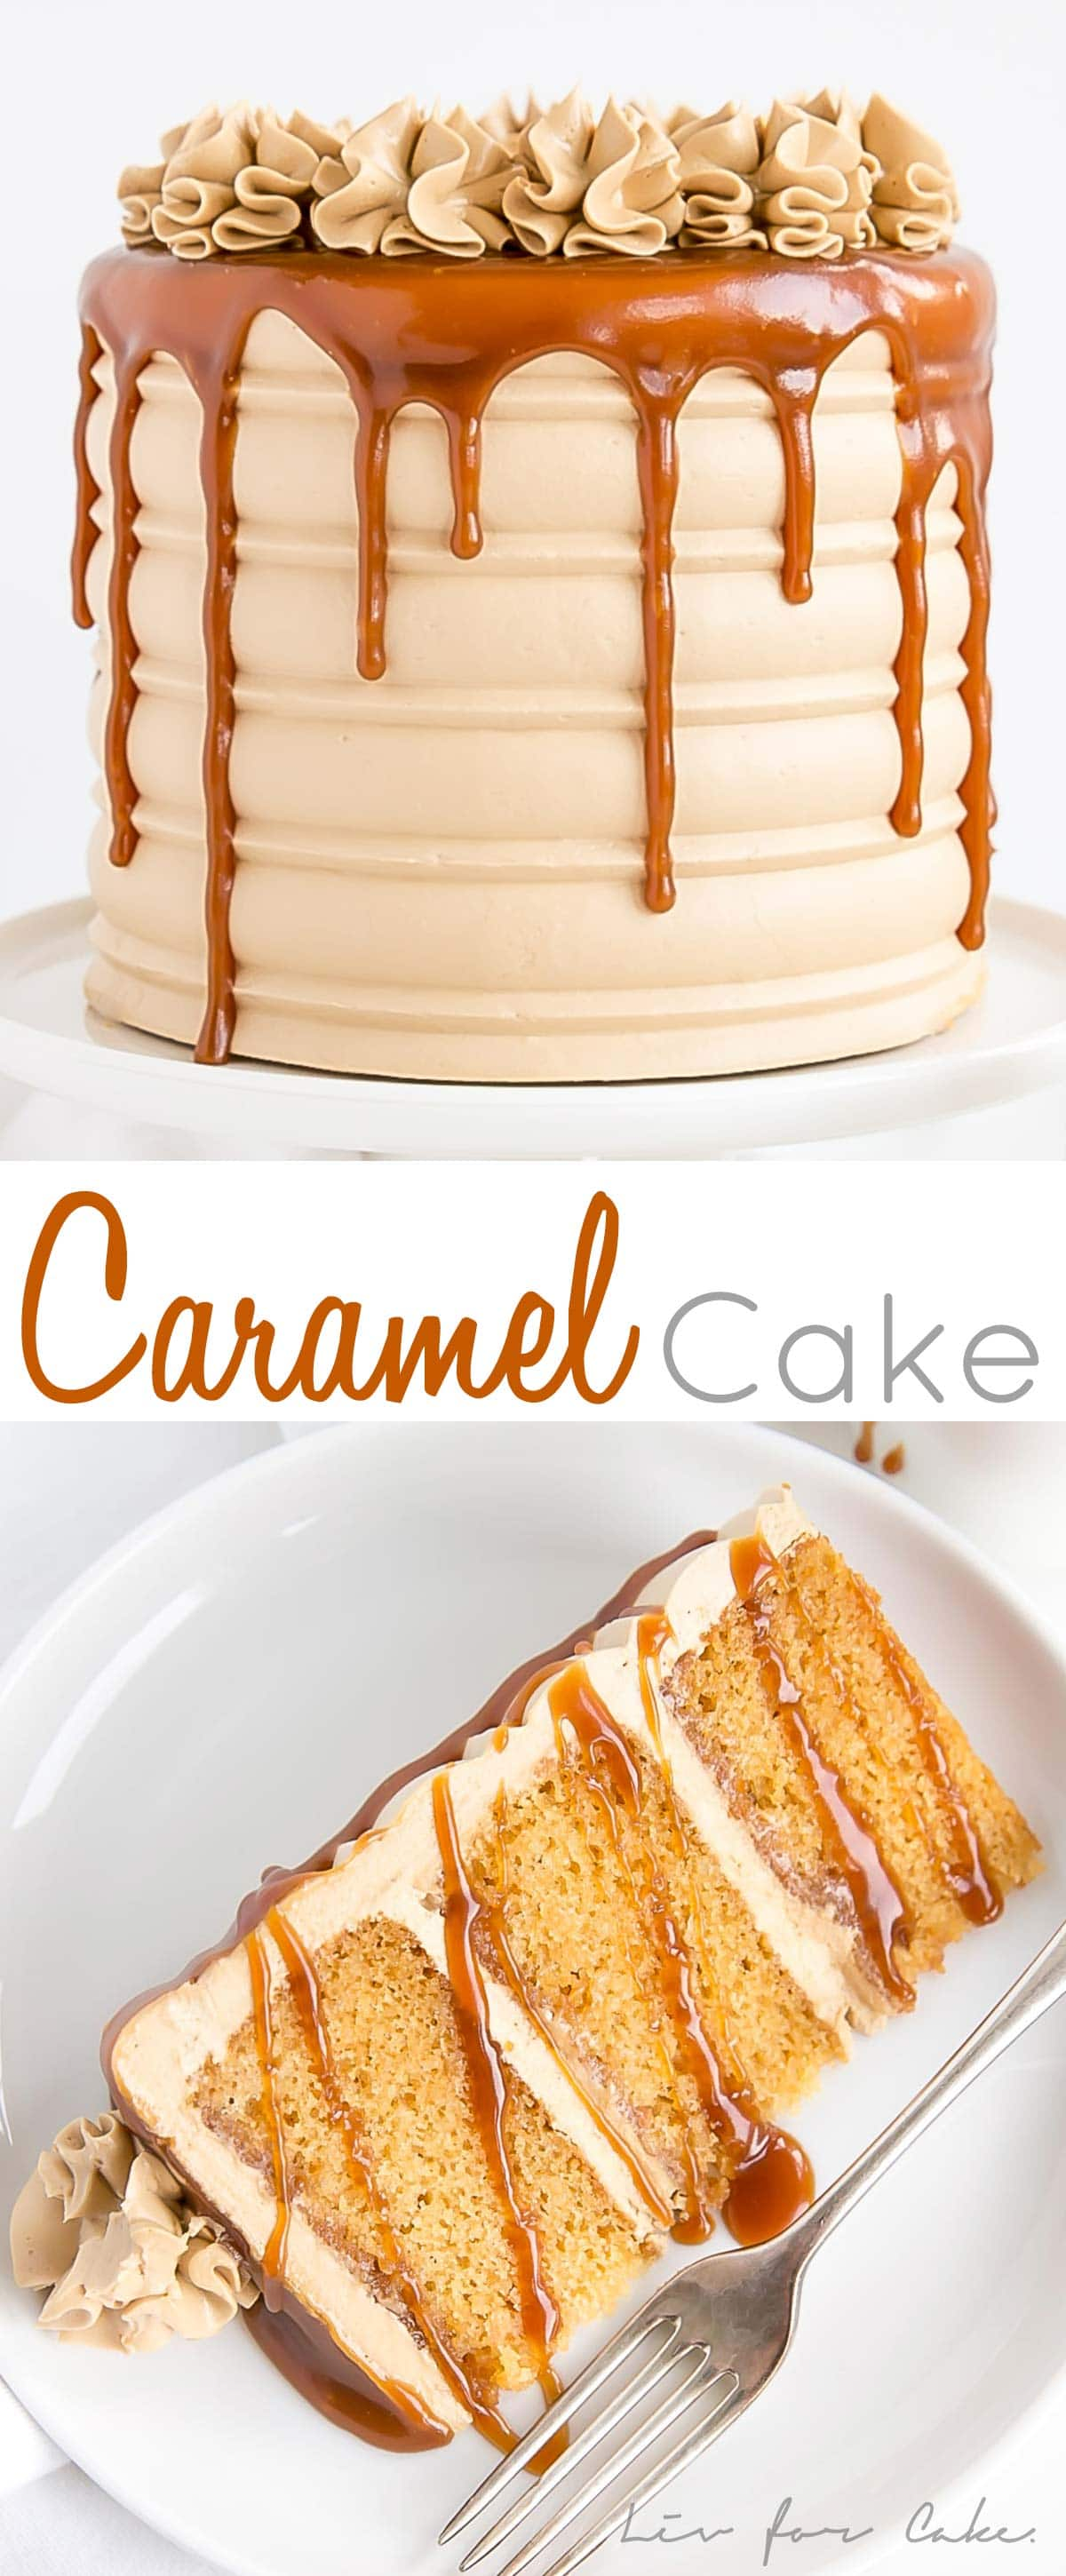 This Caramel Cake is perfect for that die hard caramel fan in your life. Homemade caramel sauce is used in the cake layers, frosting, and the drip!